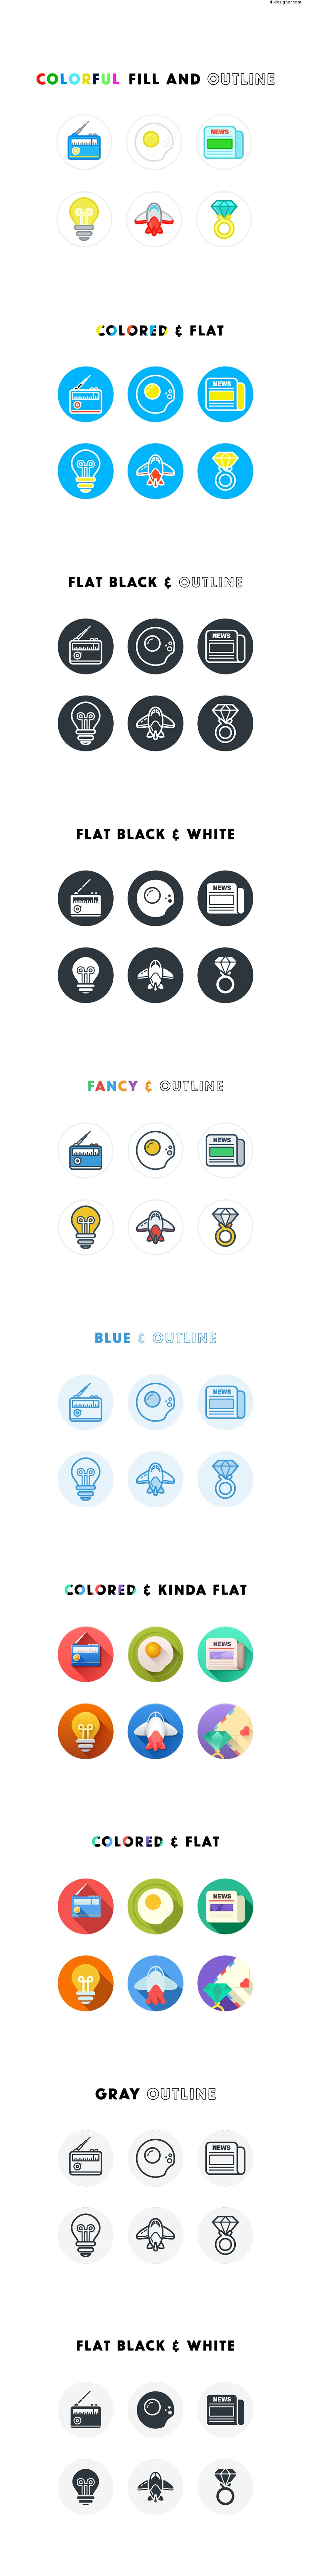 60 Icons vector for free